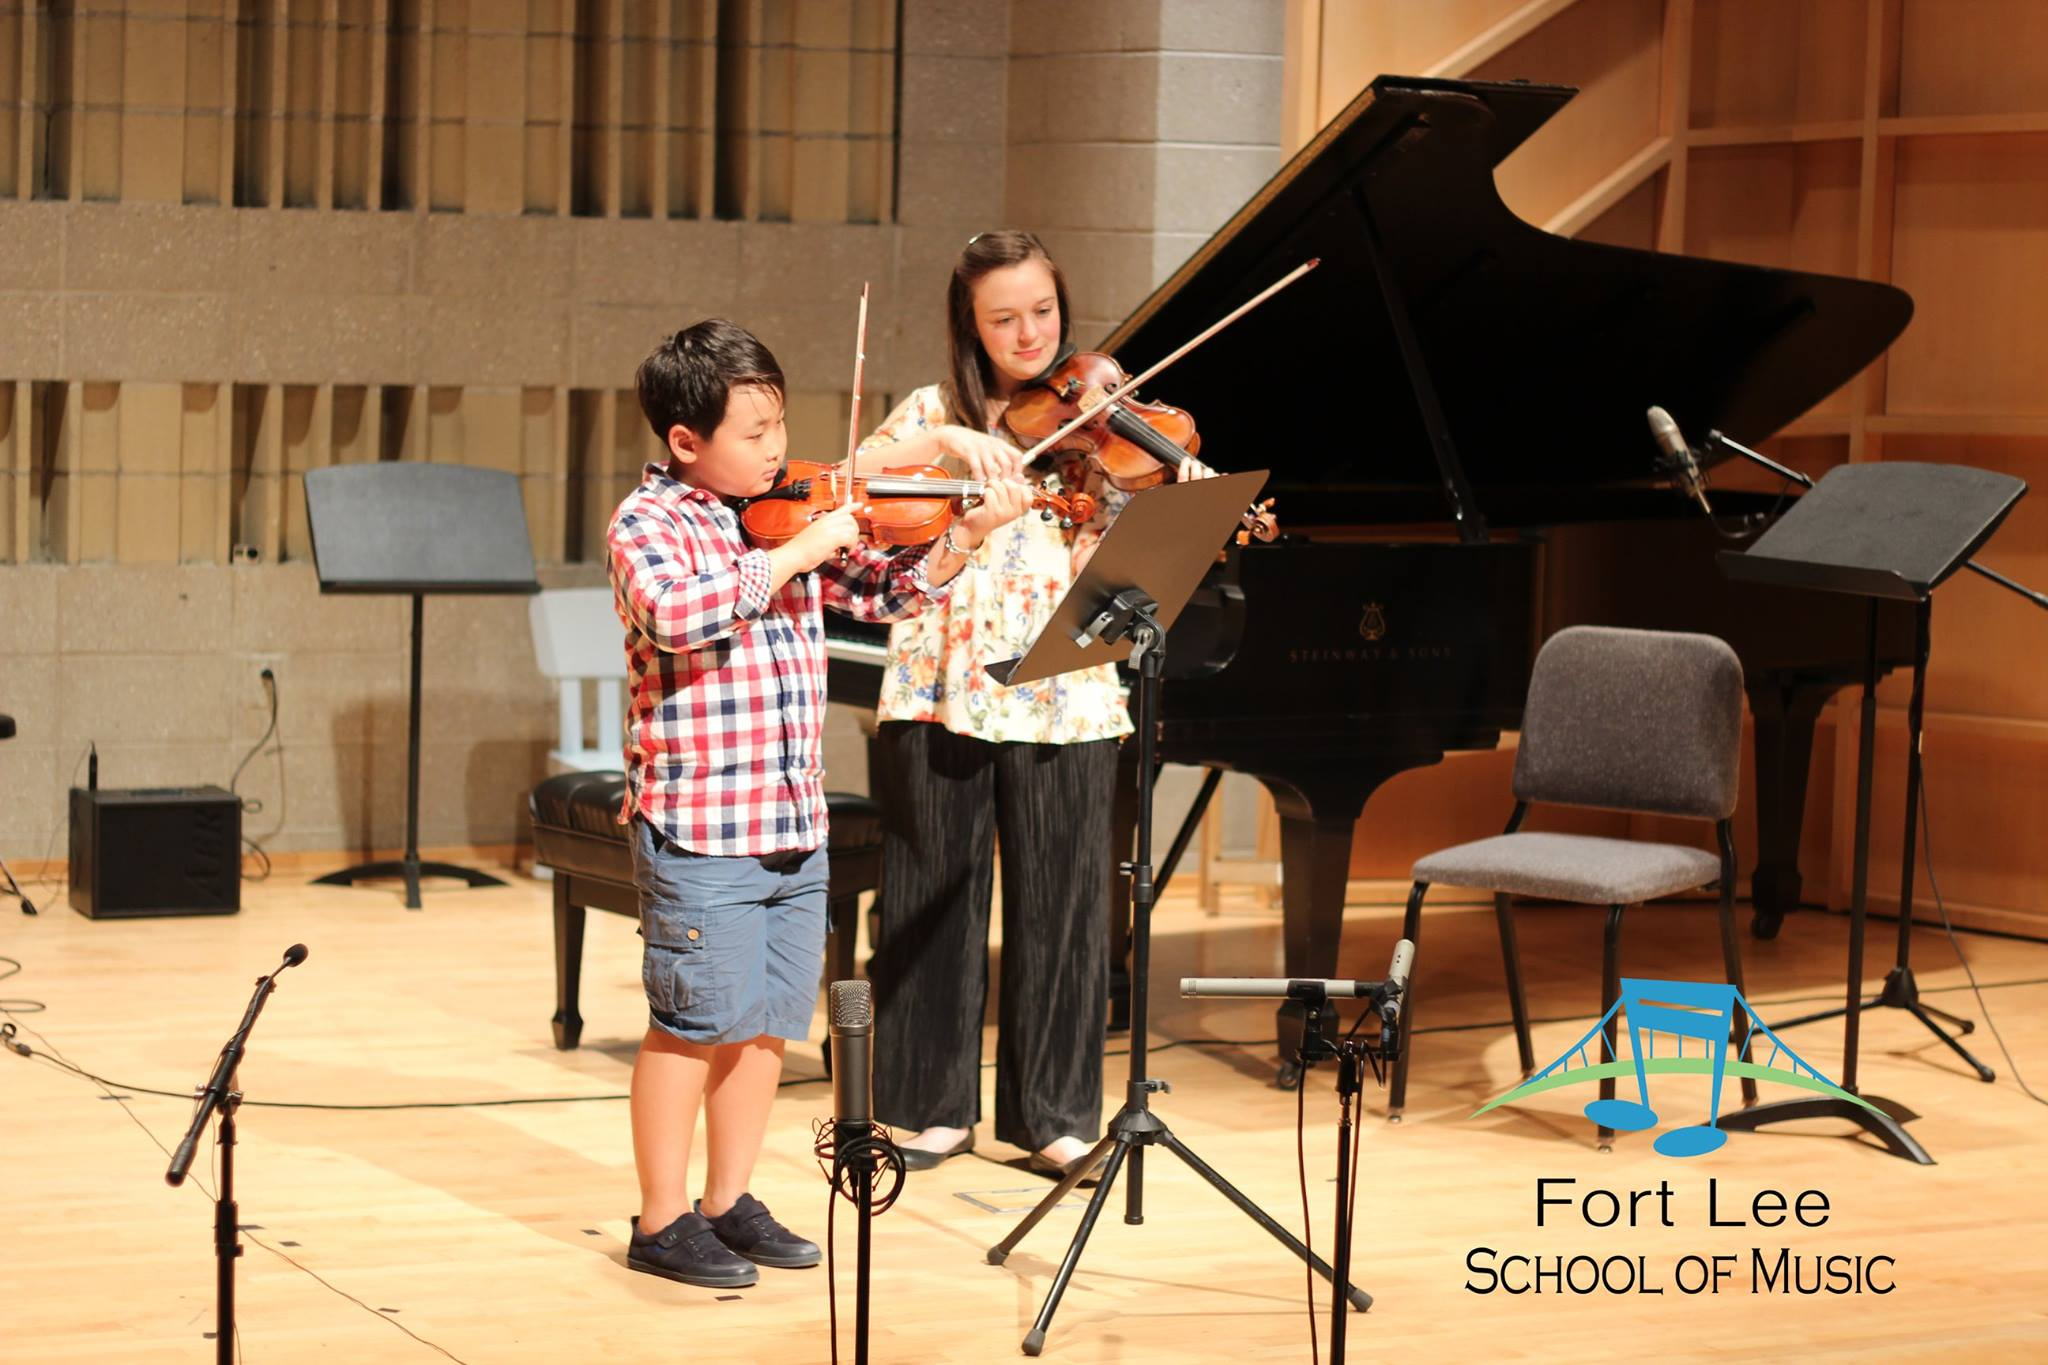 violin-lessons-near-fort-lee.jpg